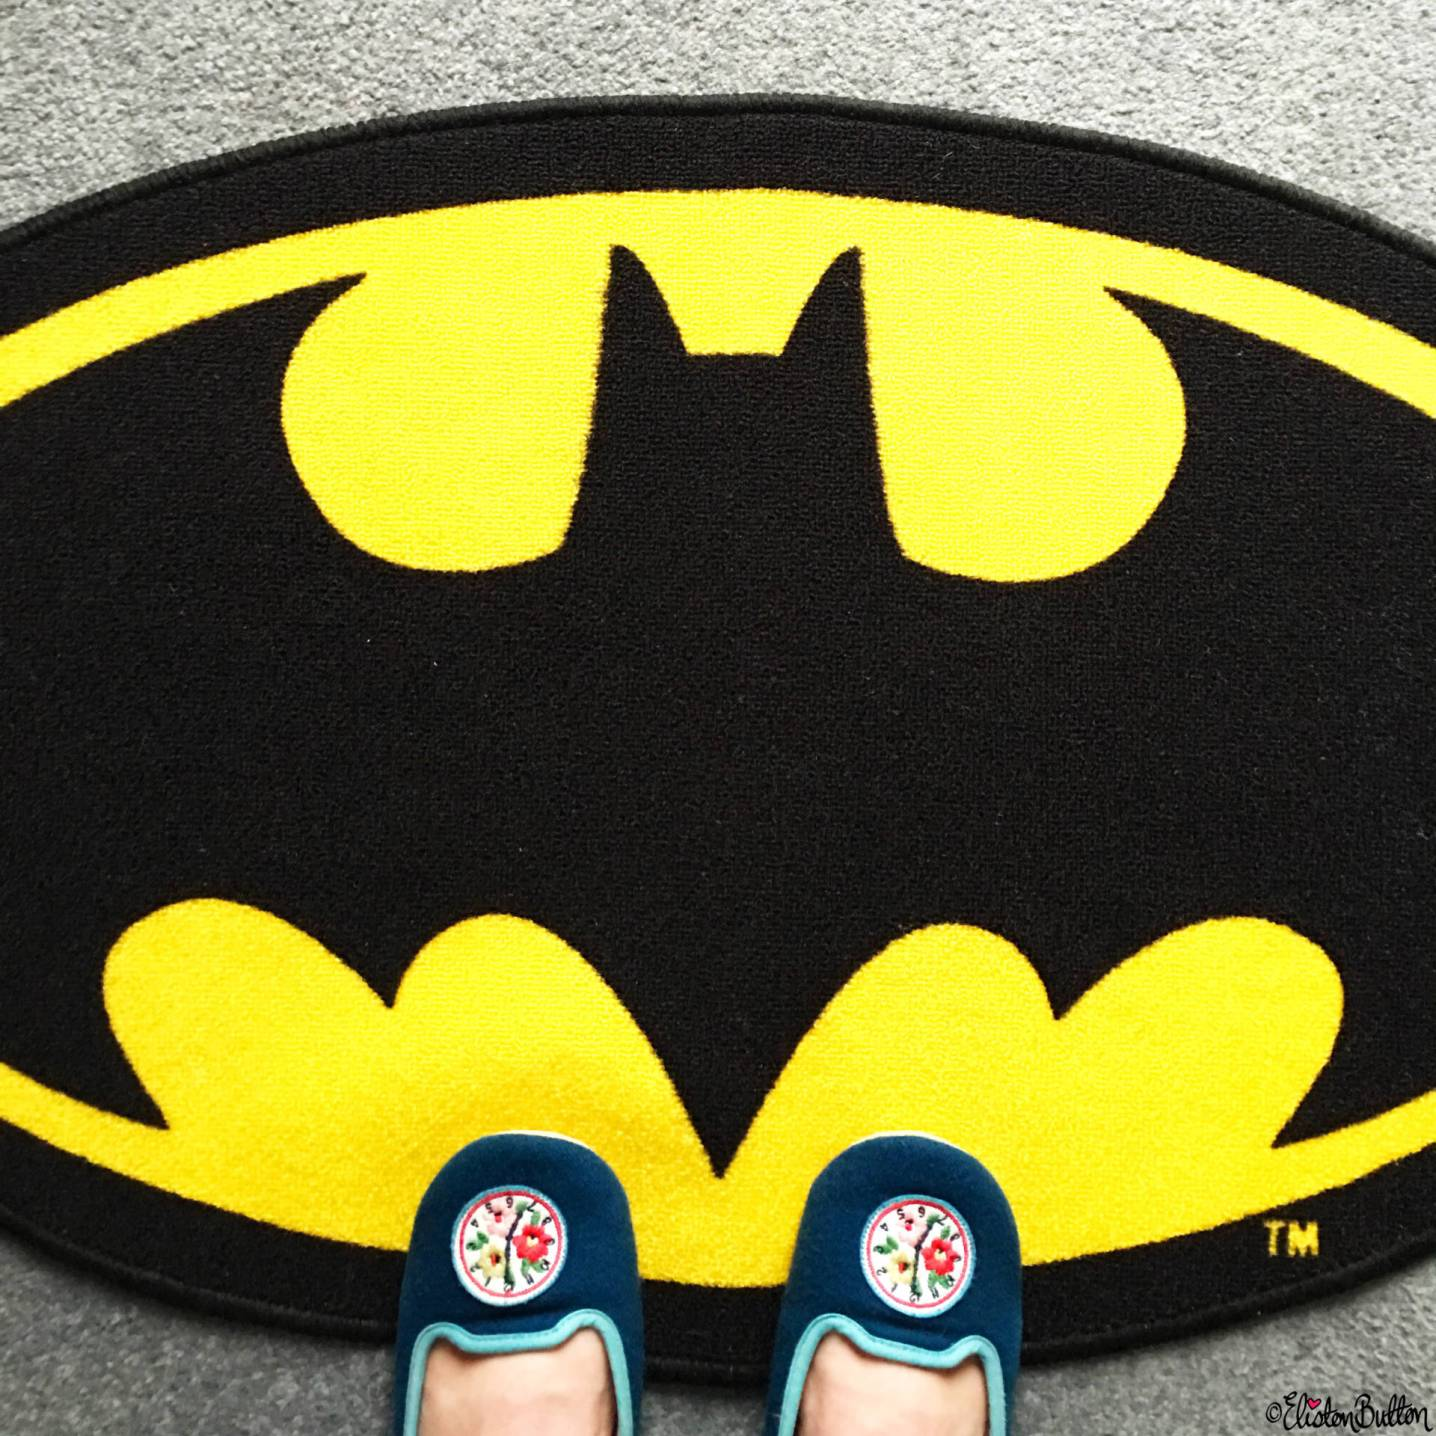 Day 08 - Where I Stood - Cath Kidston Slippers and Batman Rug - Photo-a-Day – June 2016 at www.elistonbutton.com - Eliston Button - That Crafty Kid – Art, Design, Craft & Adventure.